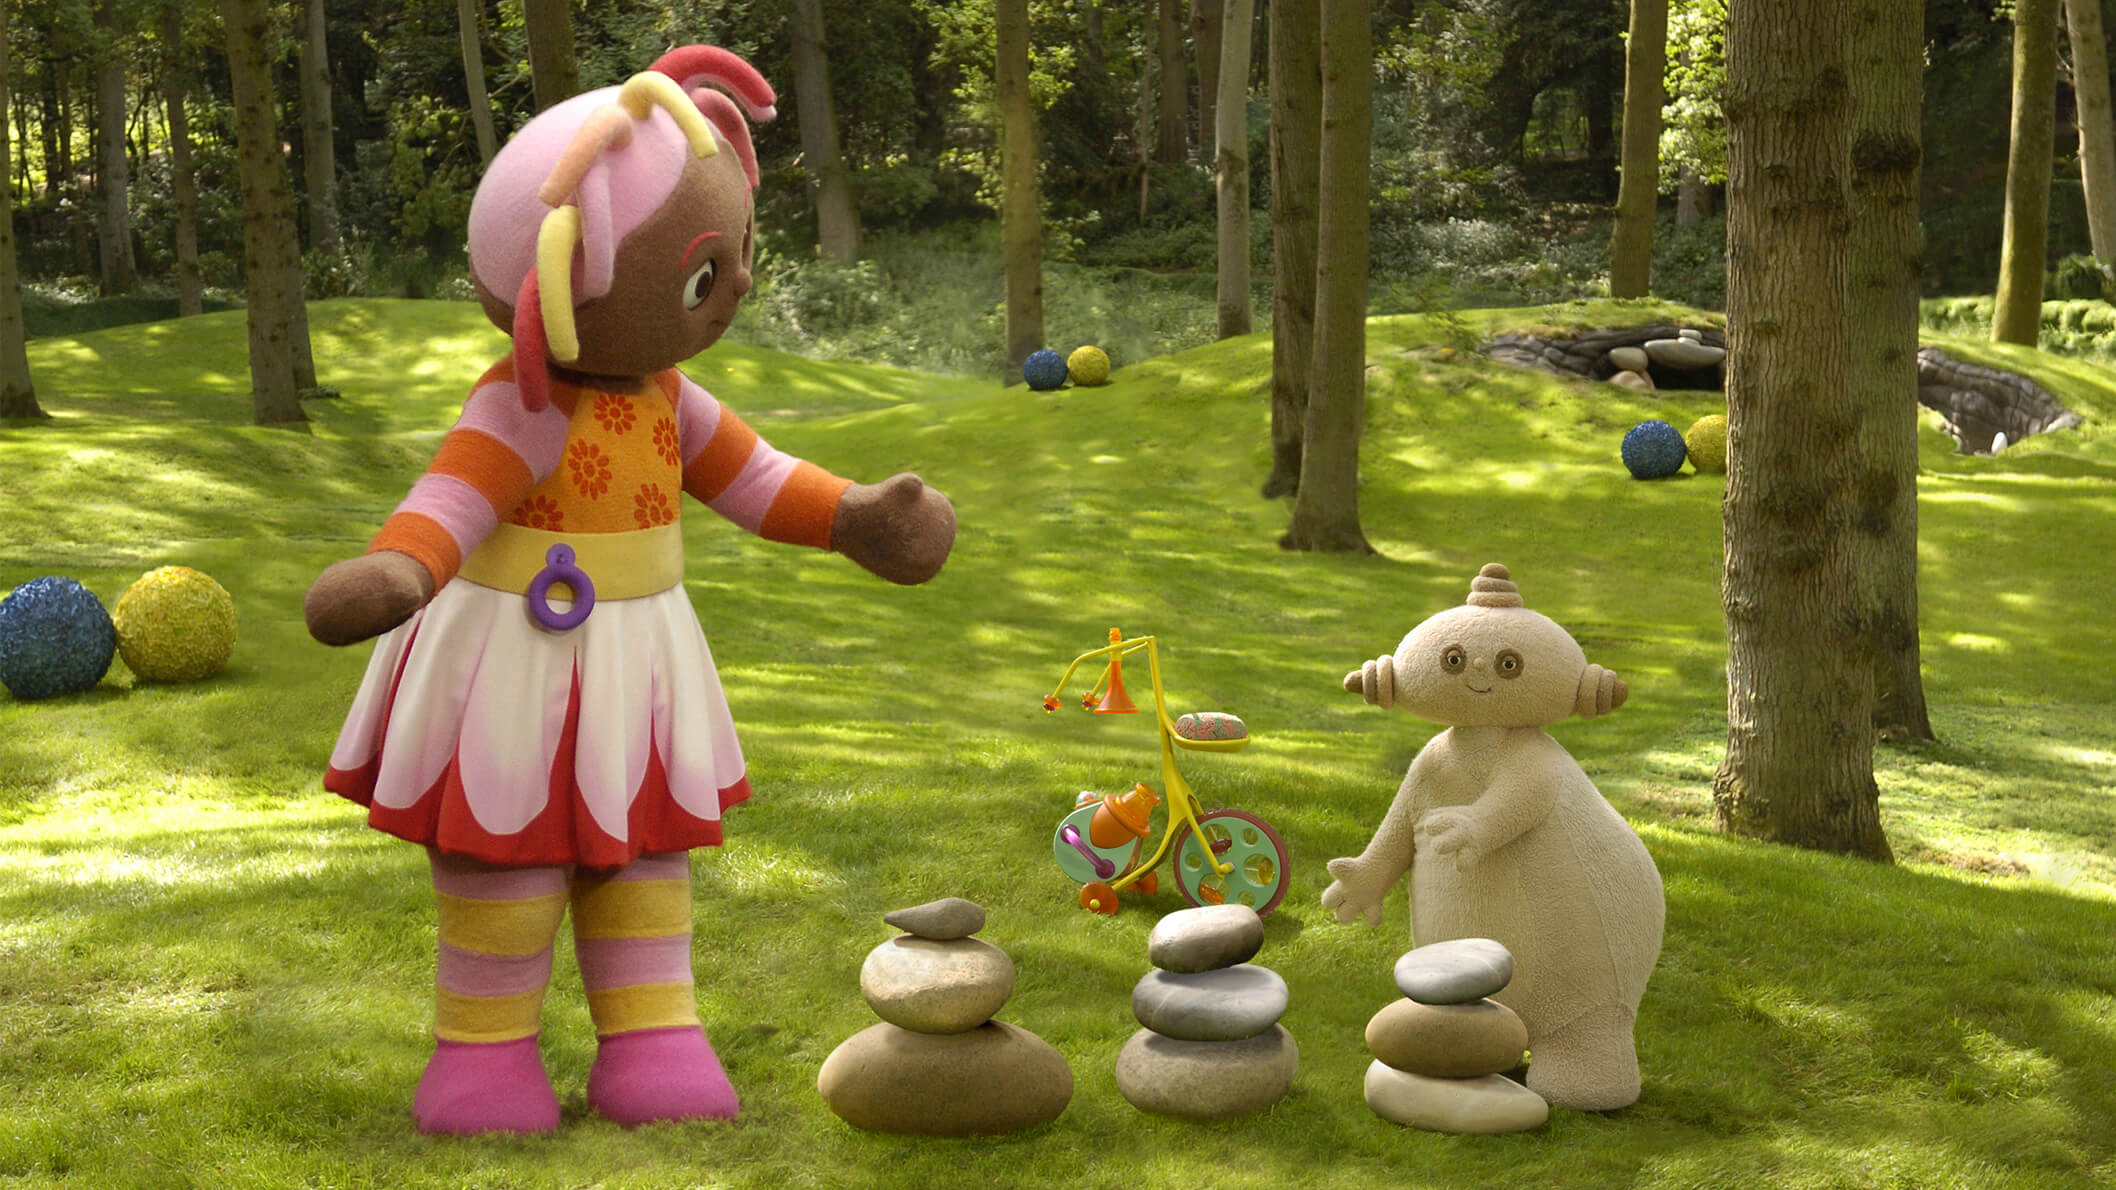 A girl with a colourful dress and hair is standing in a park beside stacked rocks and a uniquely shaped beige character.